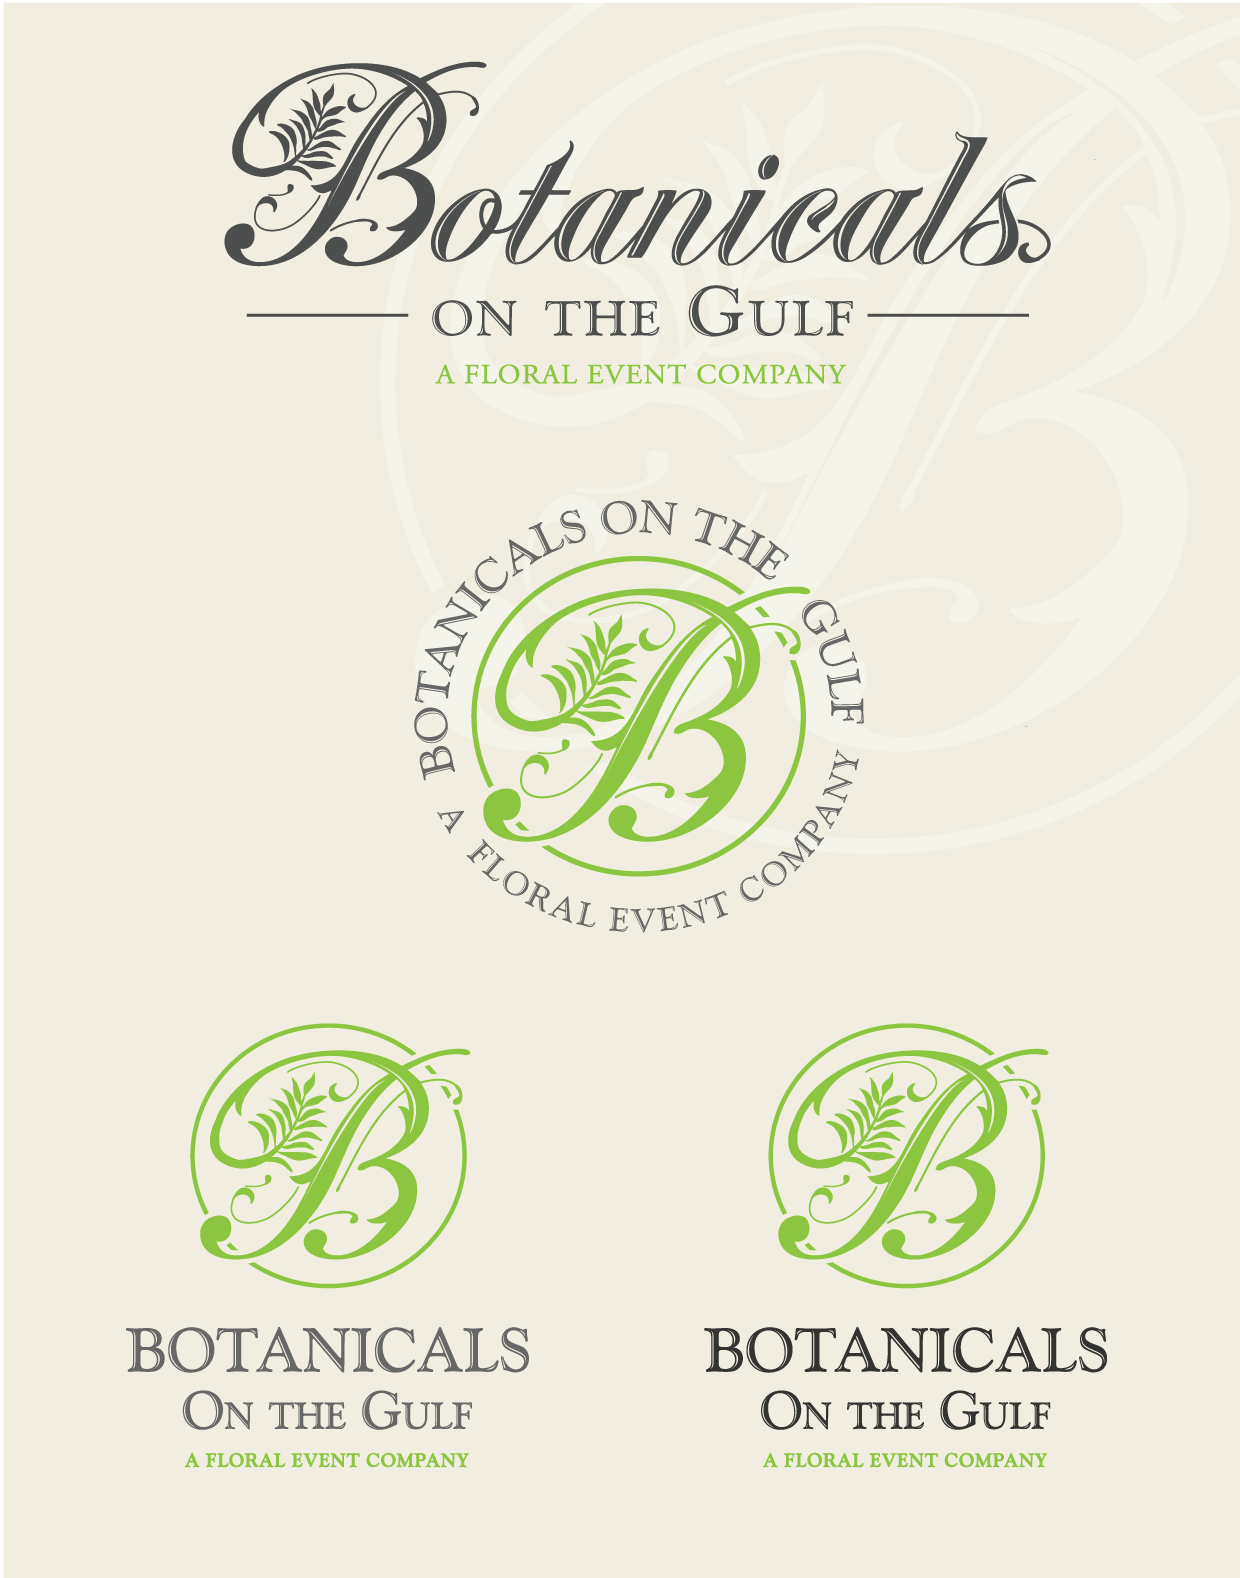 Botanicals on the Gulf needs a new logo